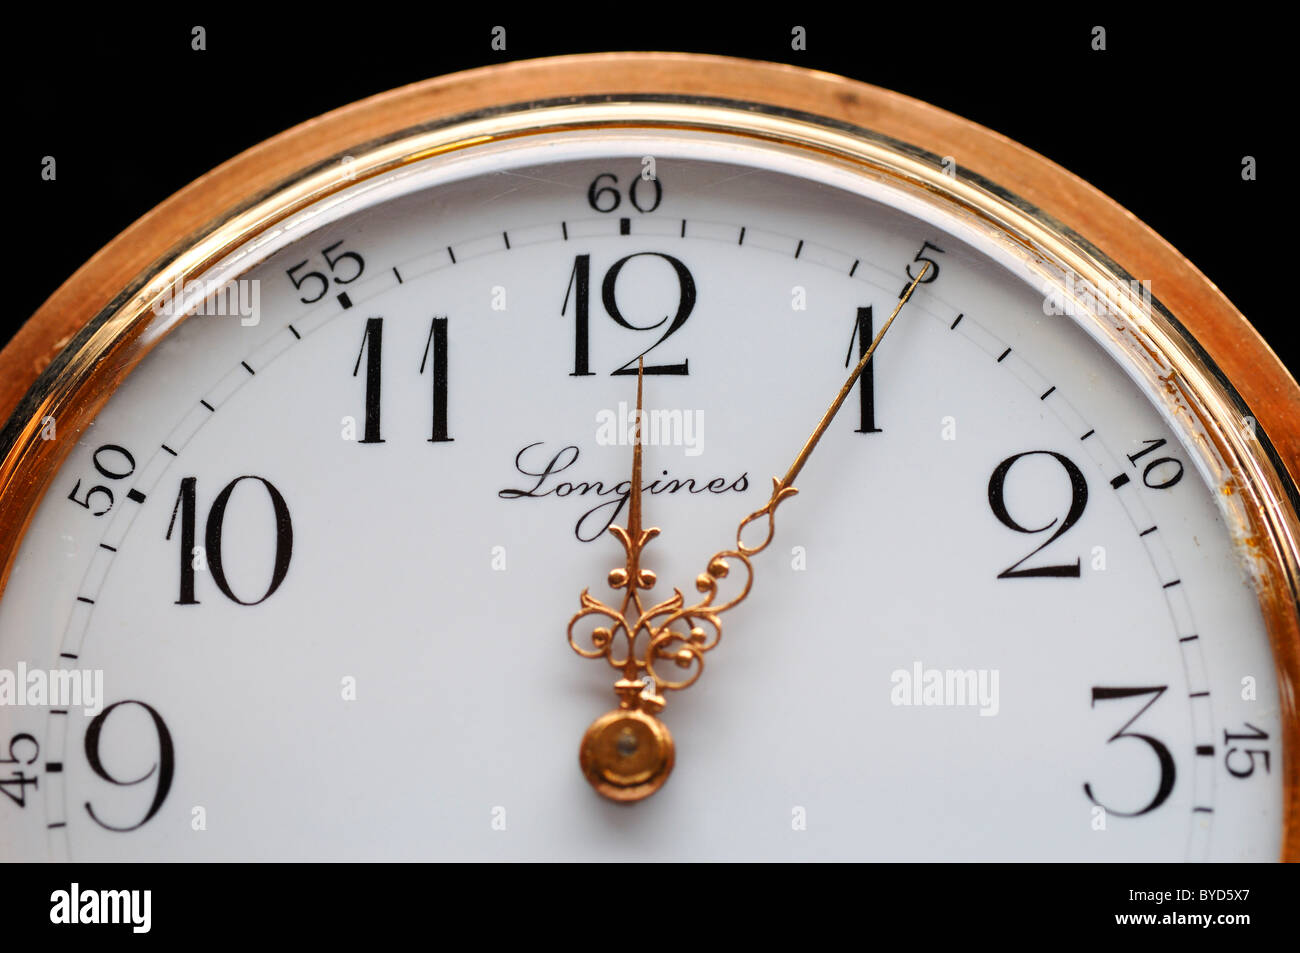 Longines gold plated pocket watch, five to twelve, 19th century, detail Stock Photo